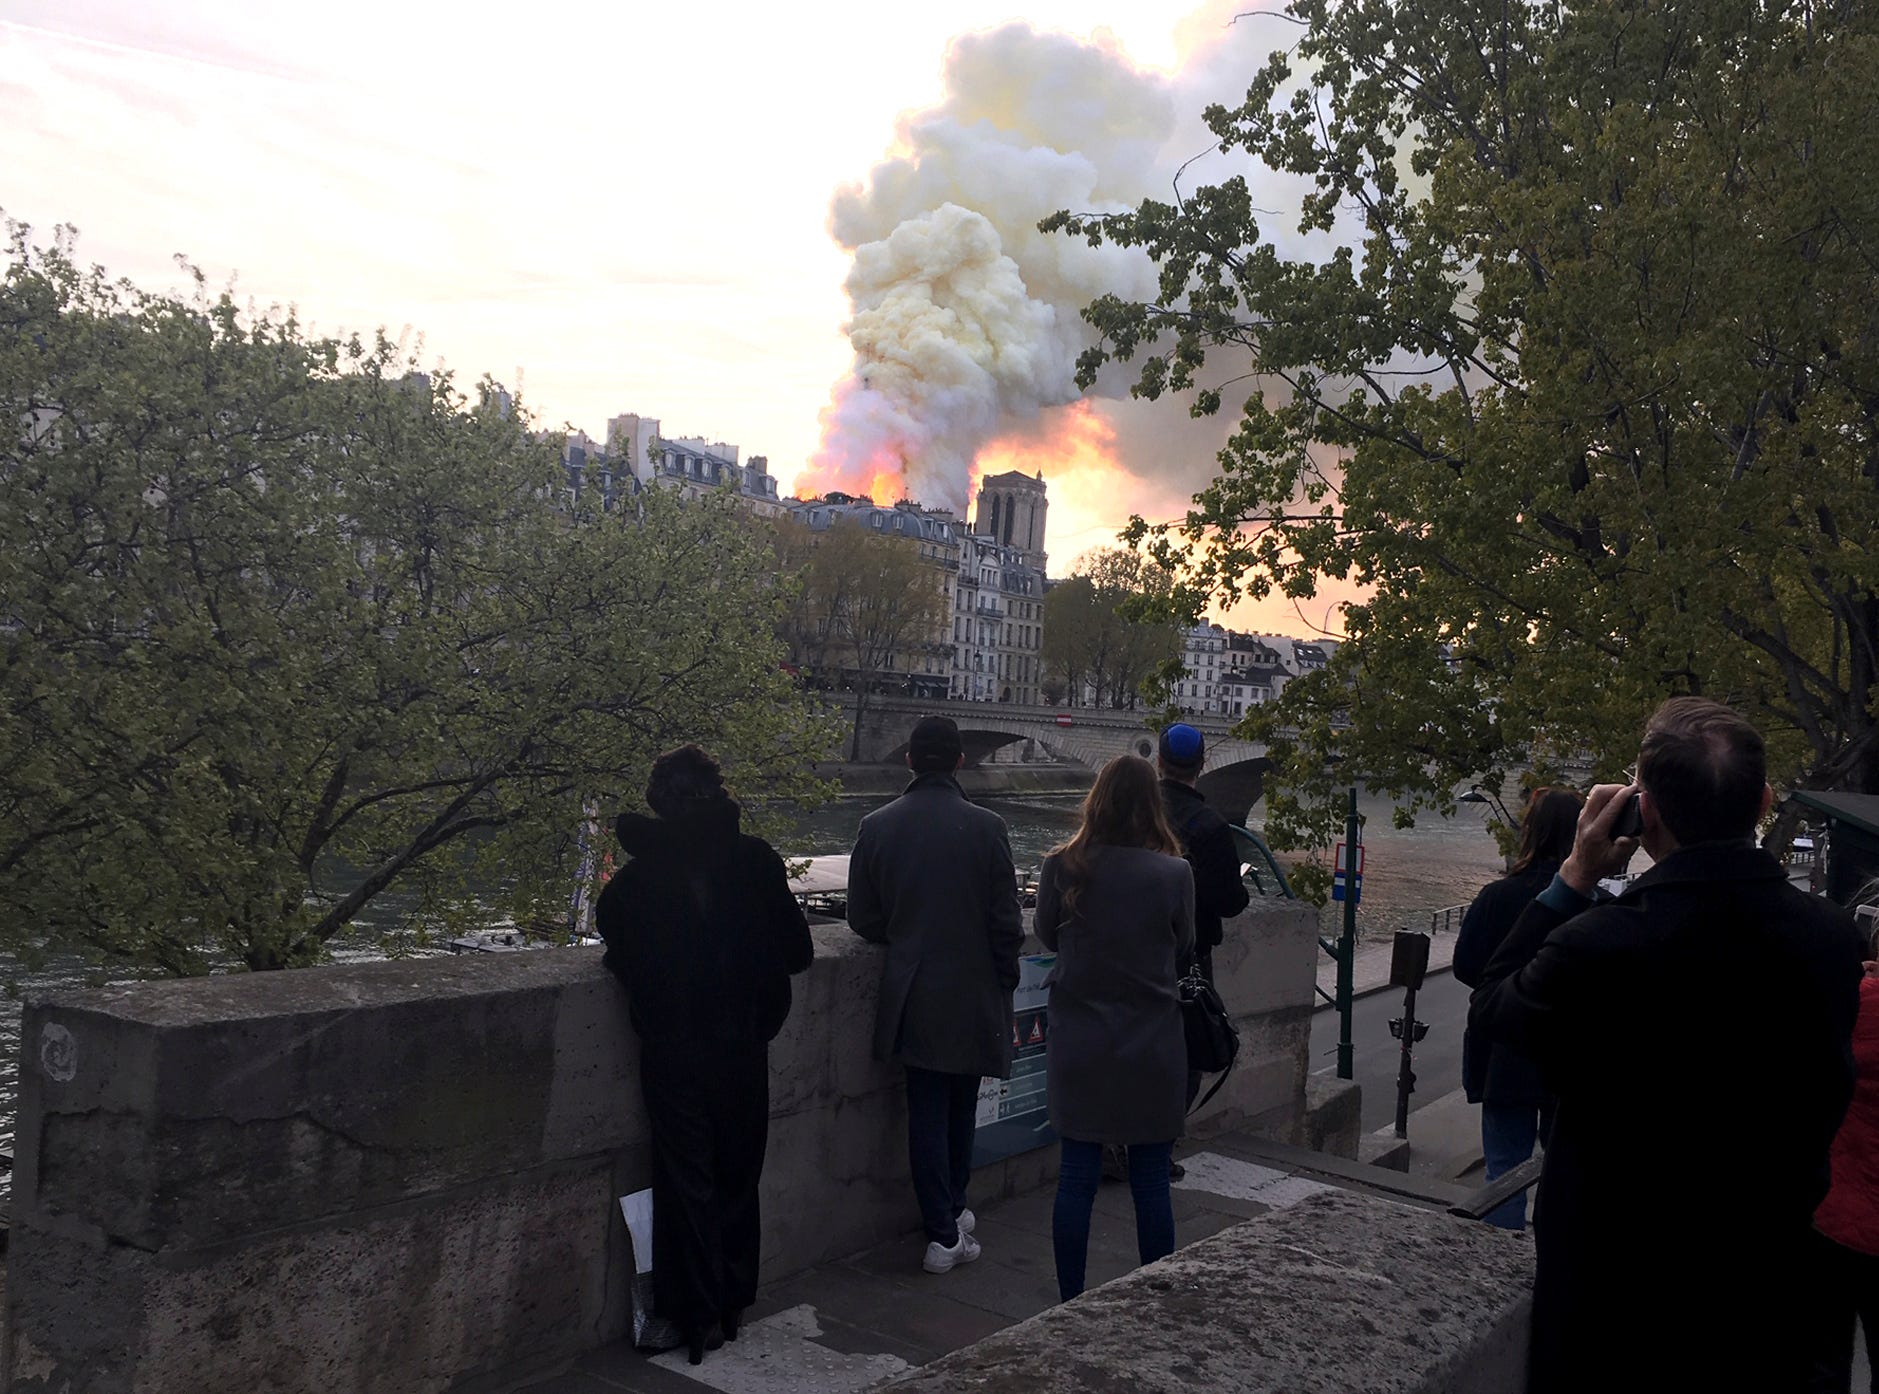 People watch Notre Dame cathedral burning in Paris, Monday, April 15, 2019. Massive plumes of yellow brown smoke is filling the air above Notre Dame Cathedral and ash is falling on tourists and others around the island that marks the center of Paris. (AP Photo/Oleg Cetinic)